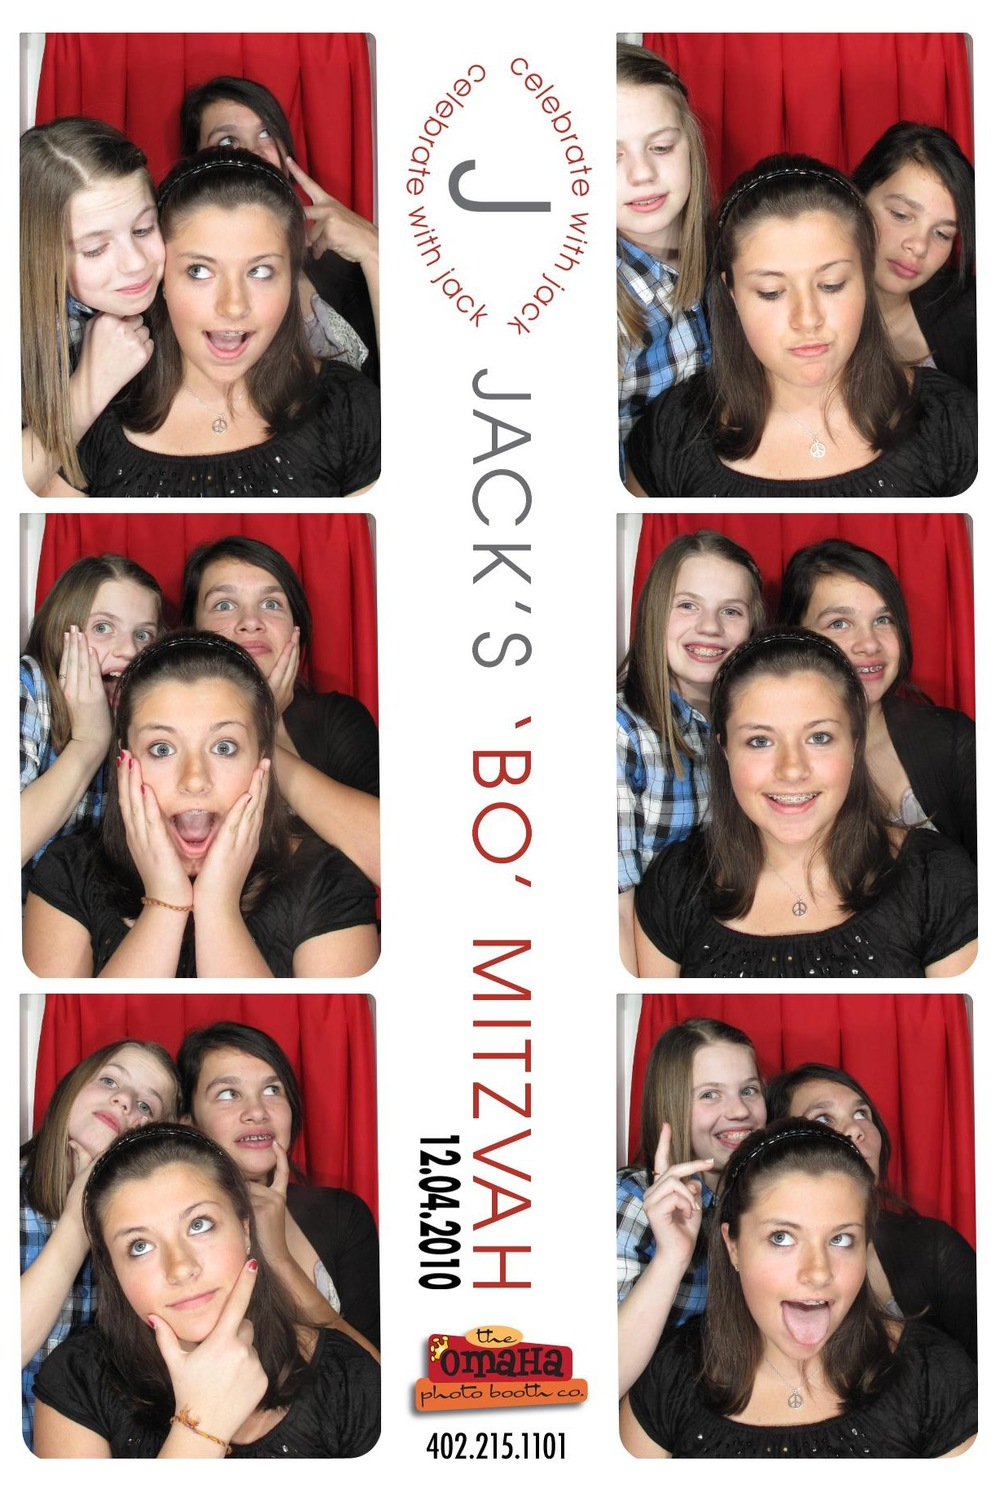 Omaha Photo Booth Rental Bar and Bat Mitzvah 2